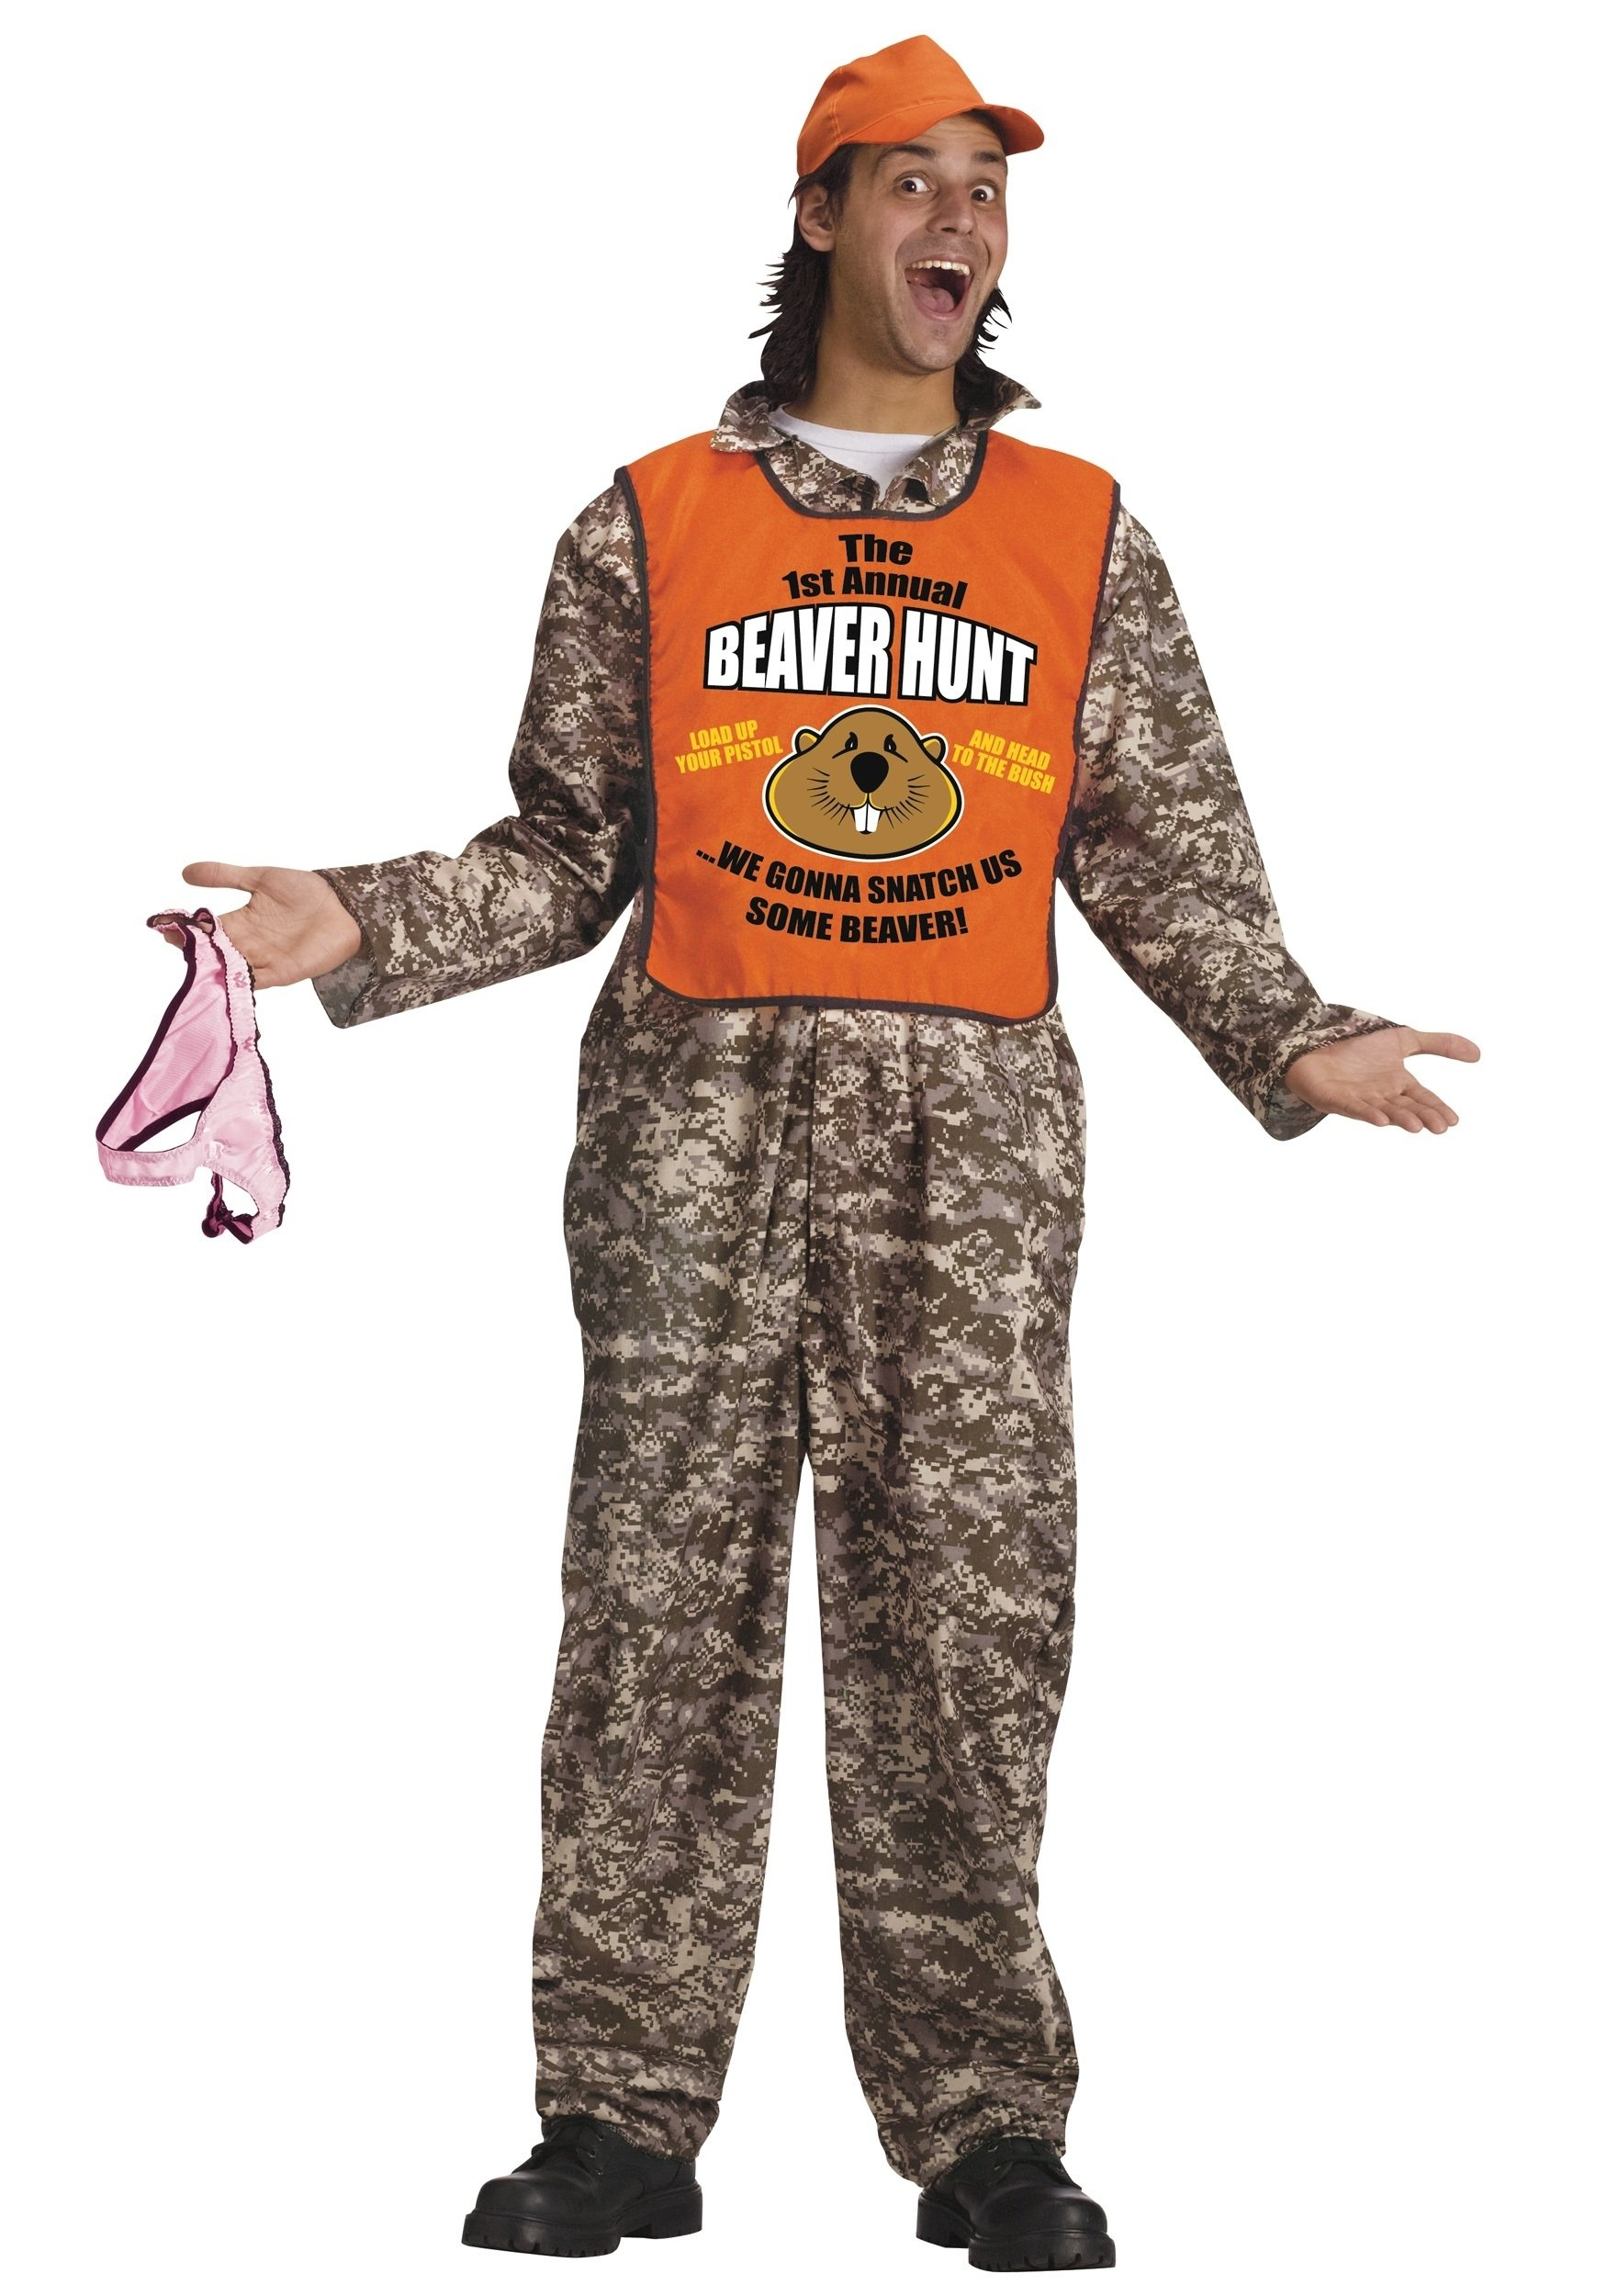 10 Stunning Halloween Costumes For Men Ideas adult beaver hunter costume halloween costumes 4 2020